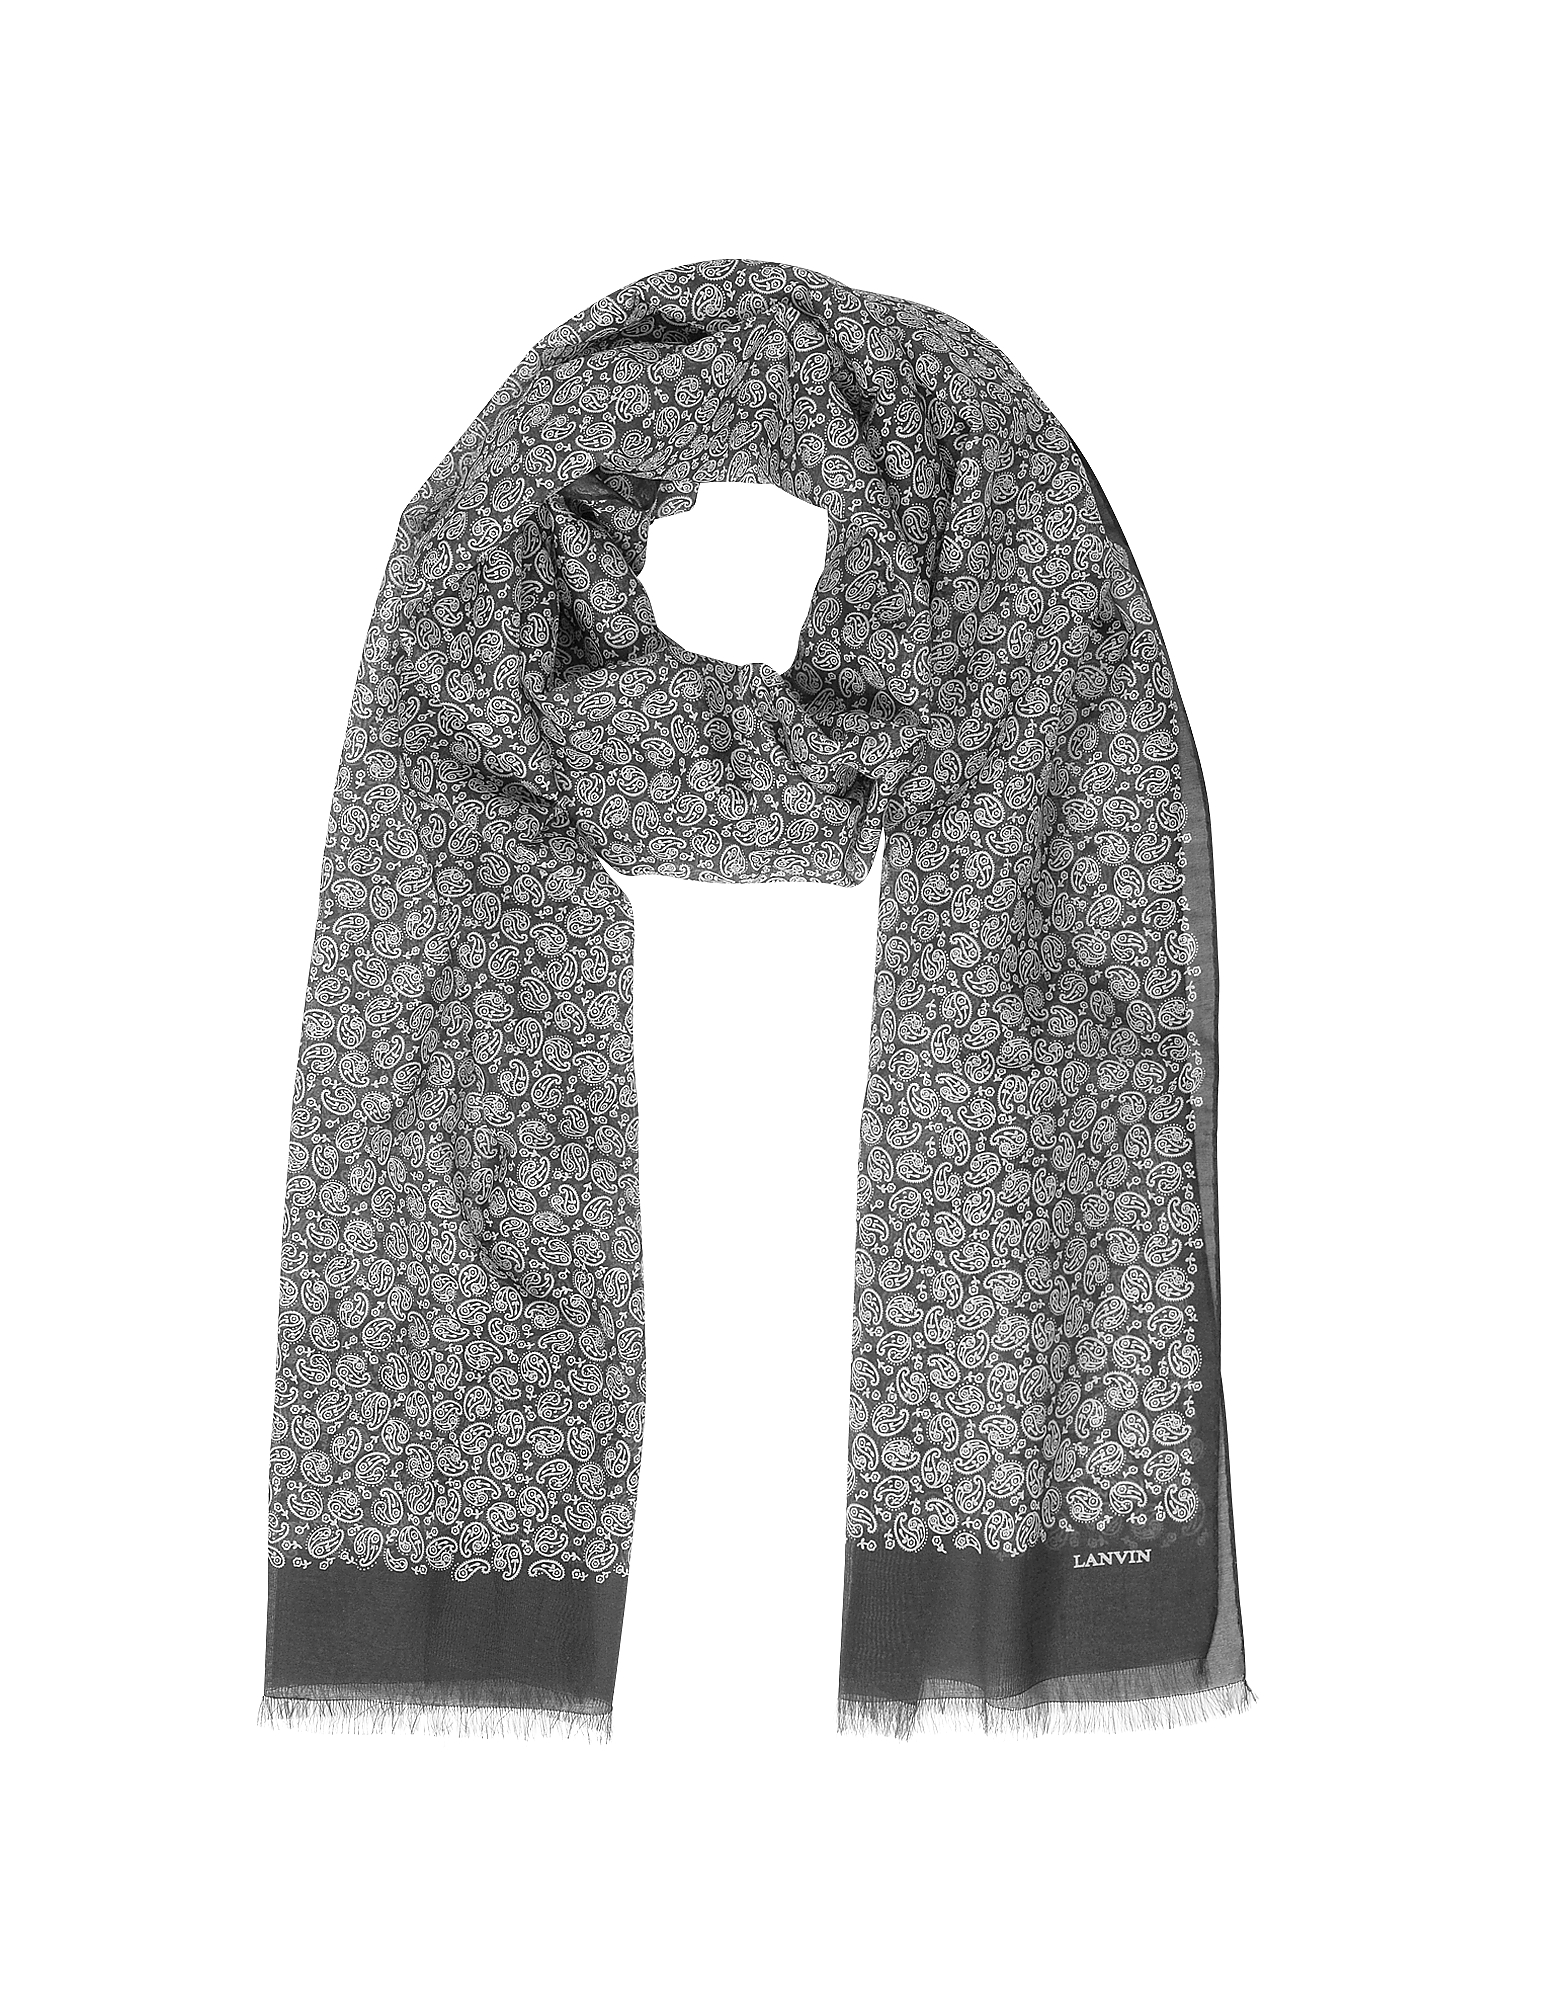 Paisley Print Cotton Blend Men's Long Scarf w/Fringes от Forzieri.com INT